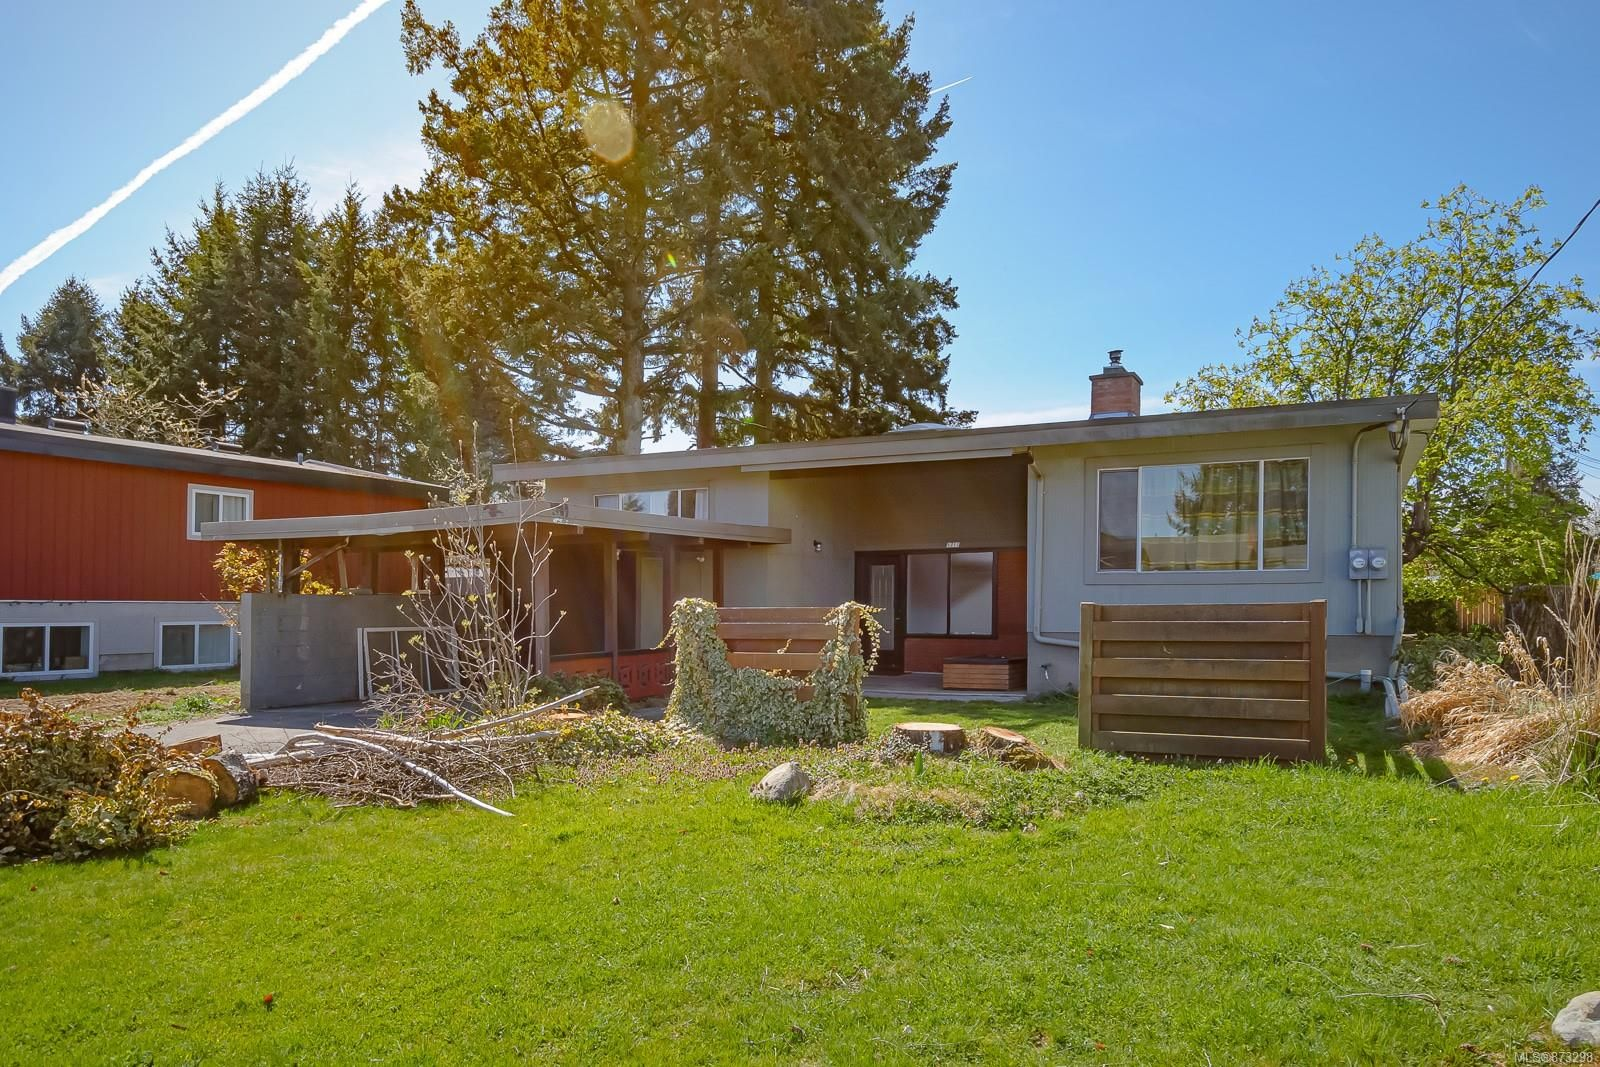 Main Photo: 1711 Fitzgerald Ave in : CV Courtenay City House for sale (Comox Valley)  : MLS®# 873298